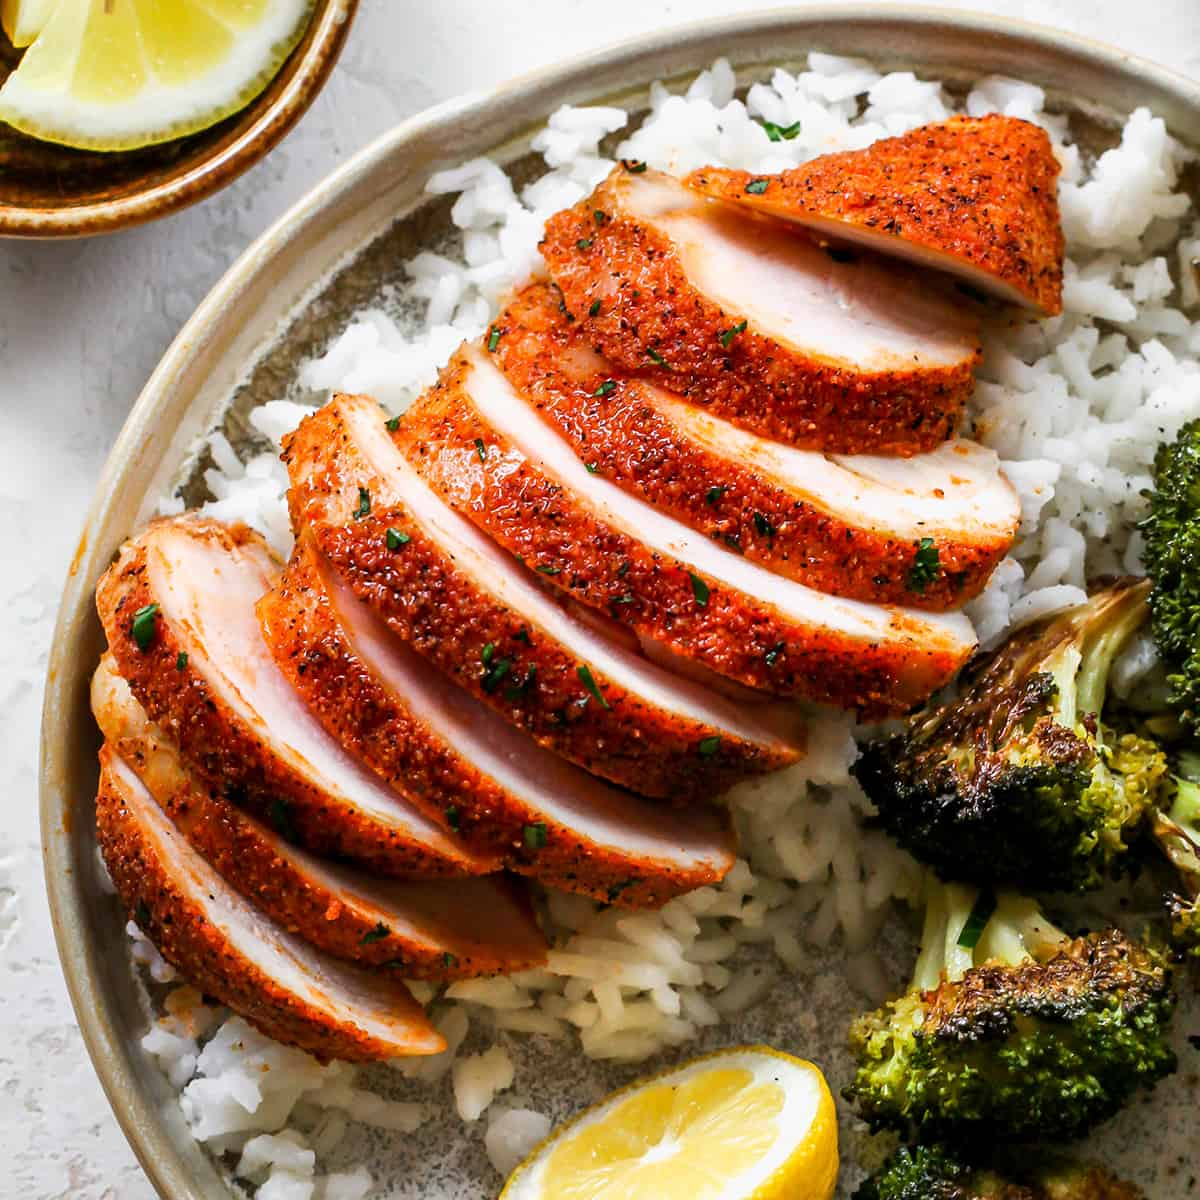 up close overhead view of a Baked Chicken Breast sliced on top of rice with a side of broccoli on a plate